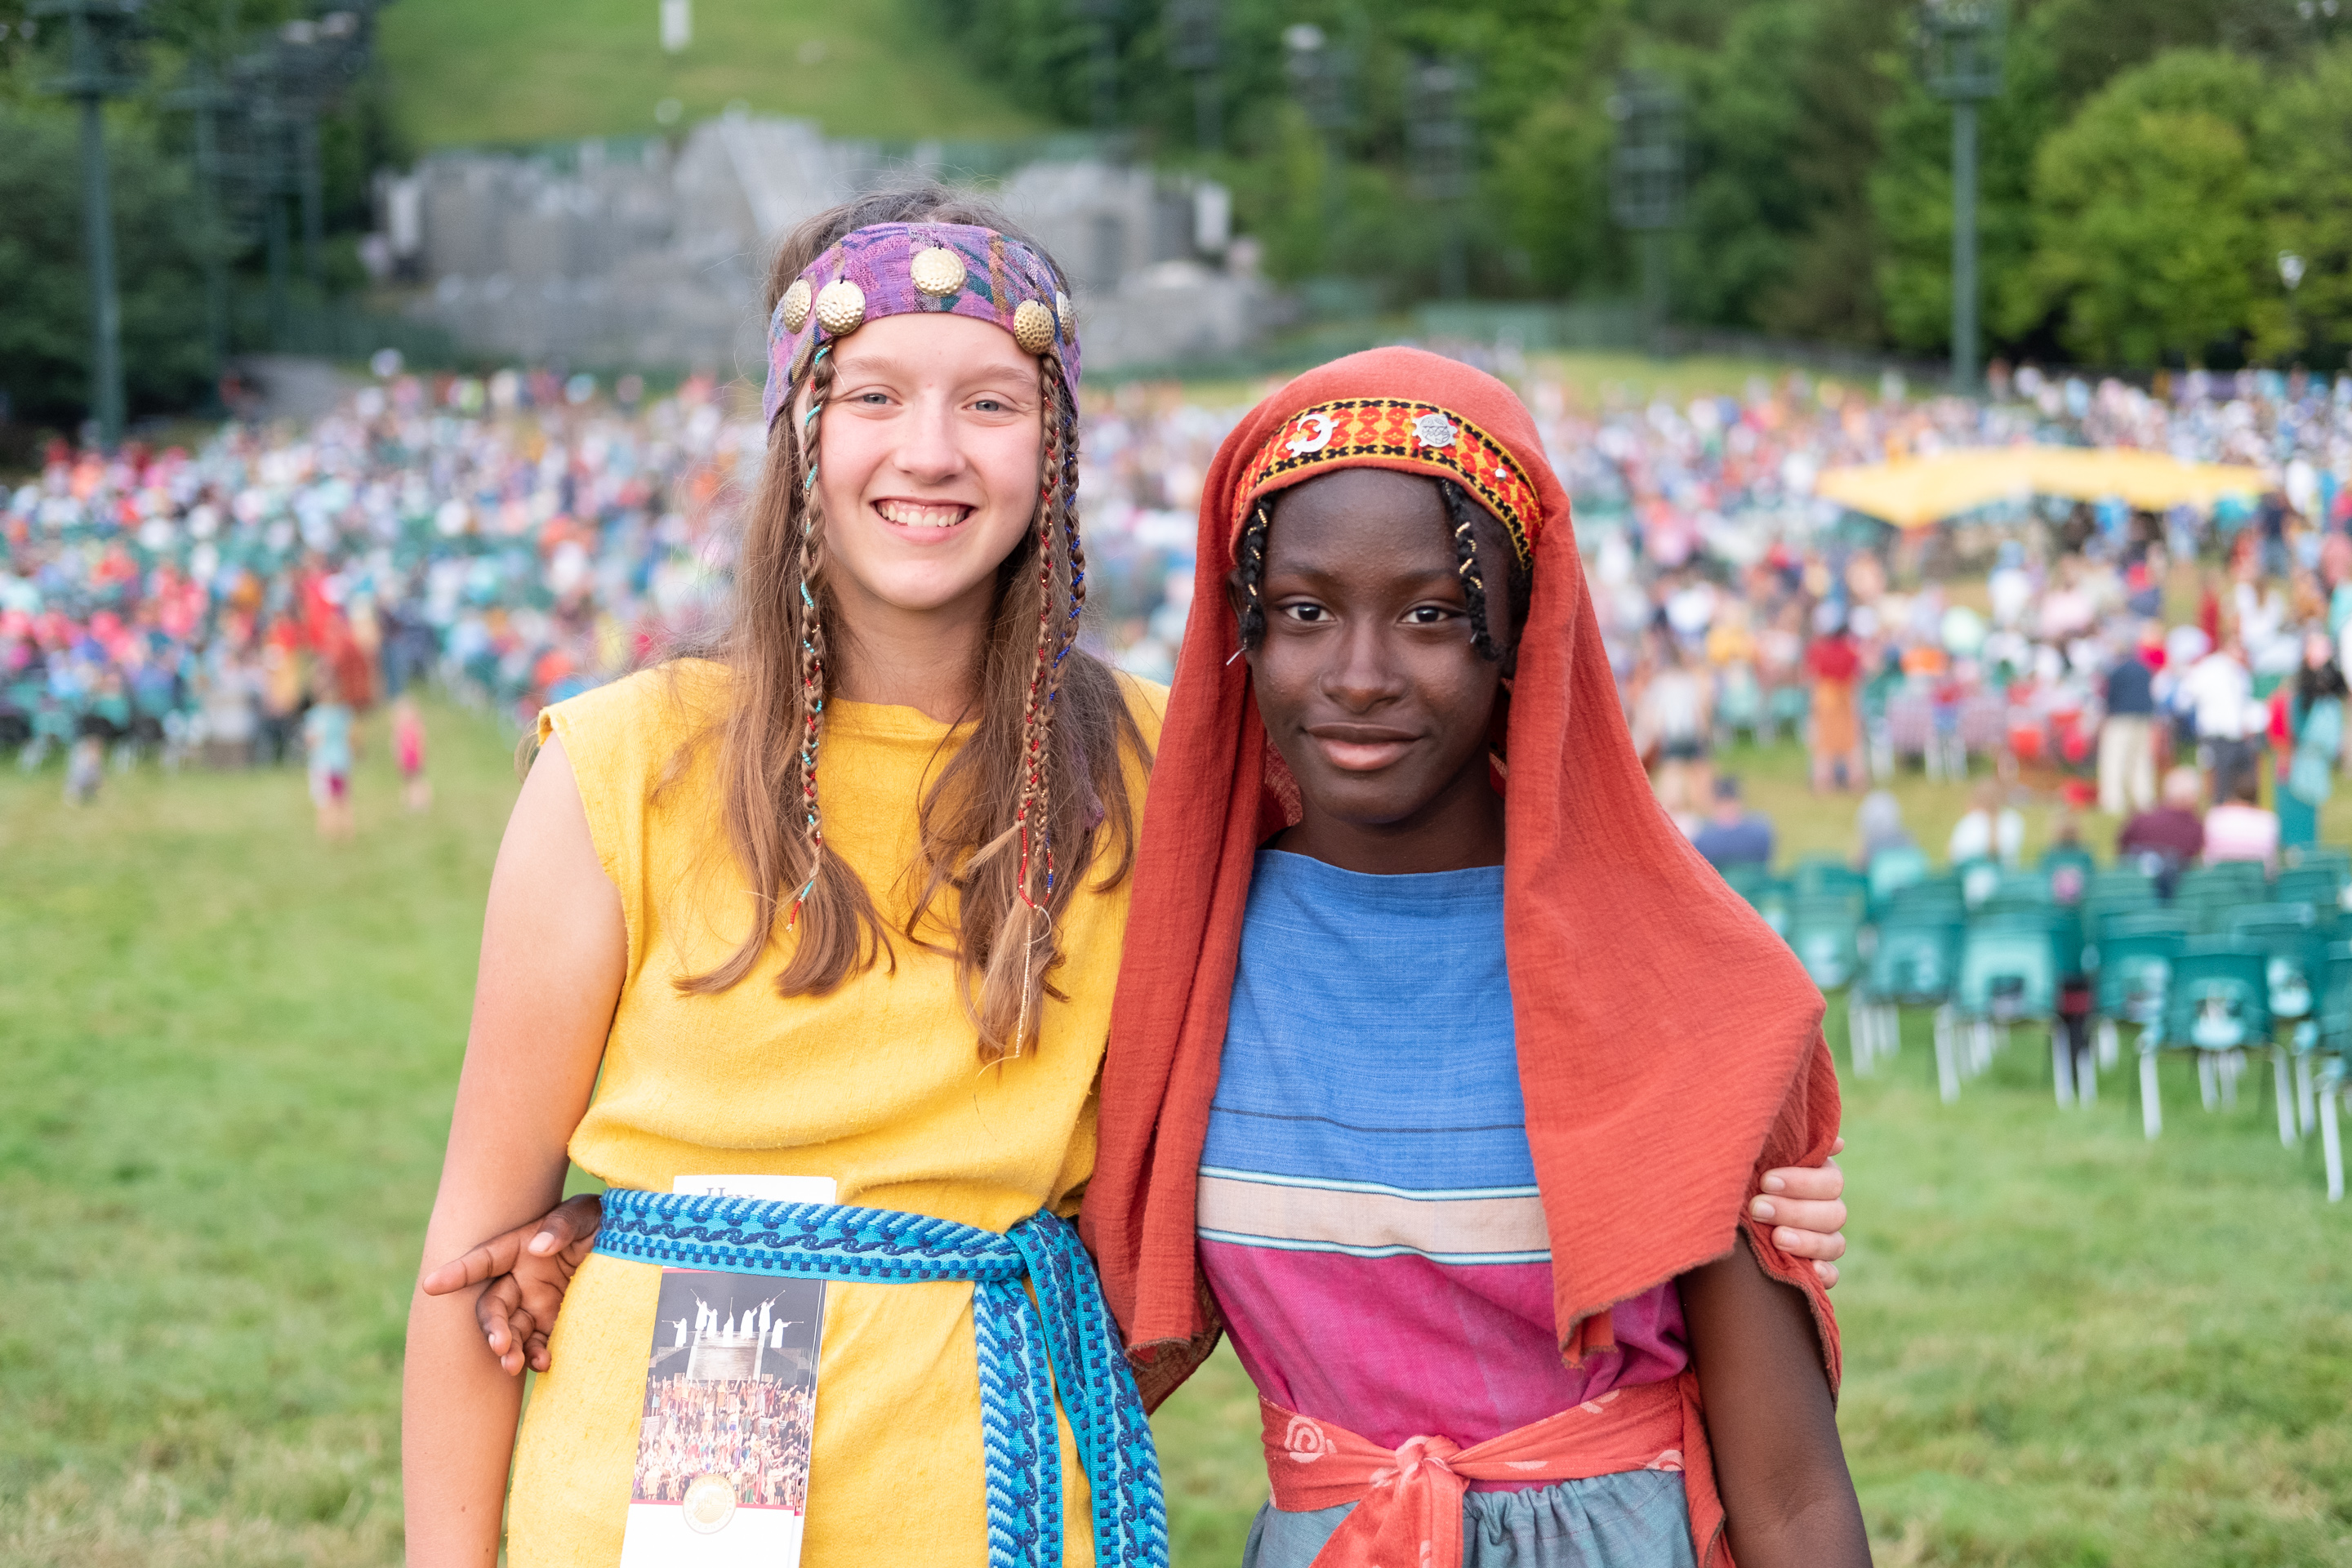 Two participants welcome visitors to the yearly Hill Cumorah Pagaent, Palmyra, NY, 2019